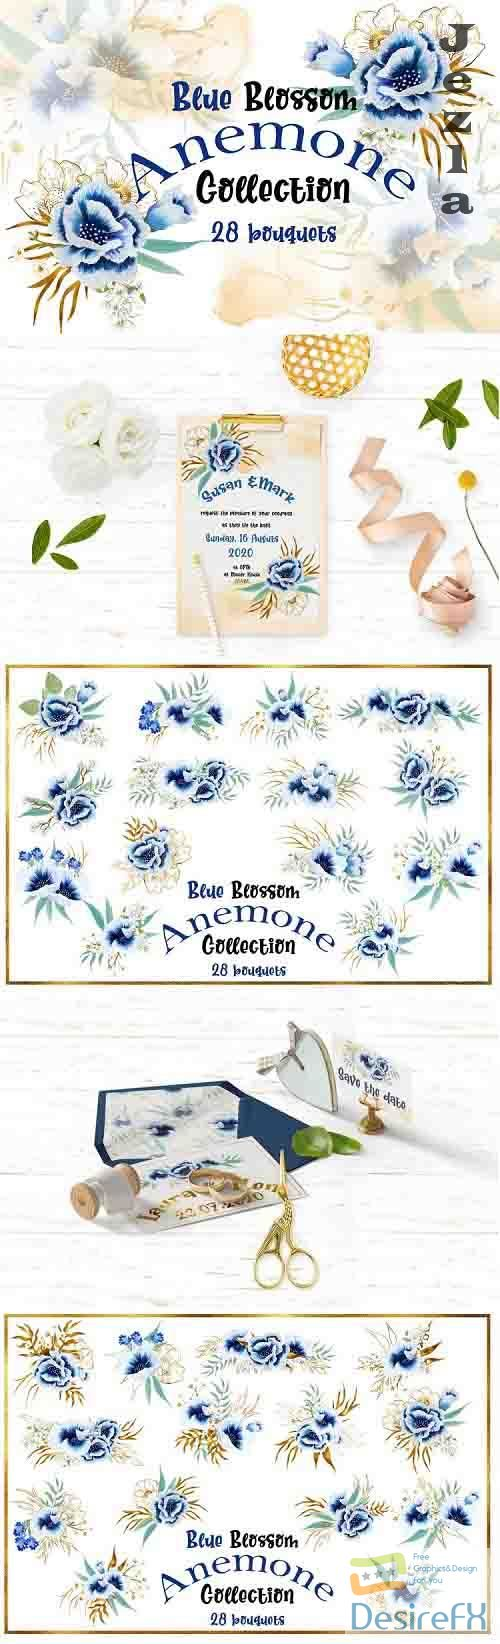 Watercolor Hand Painted Anemone Bouquets for Invitatios - 782780